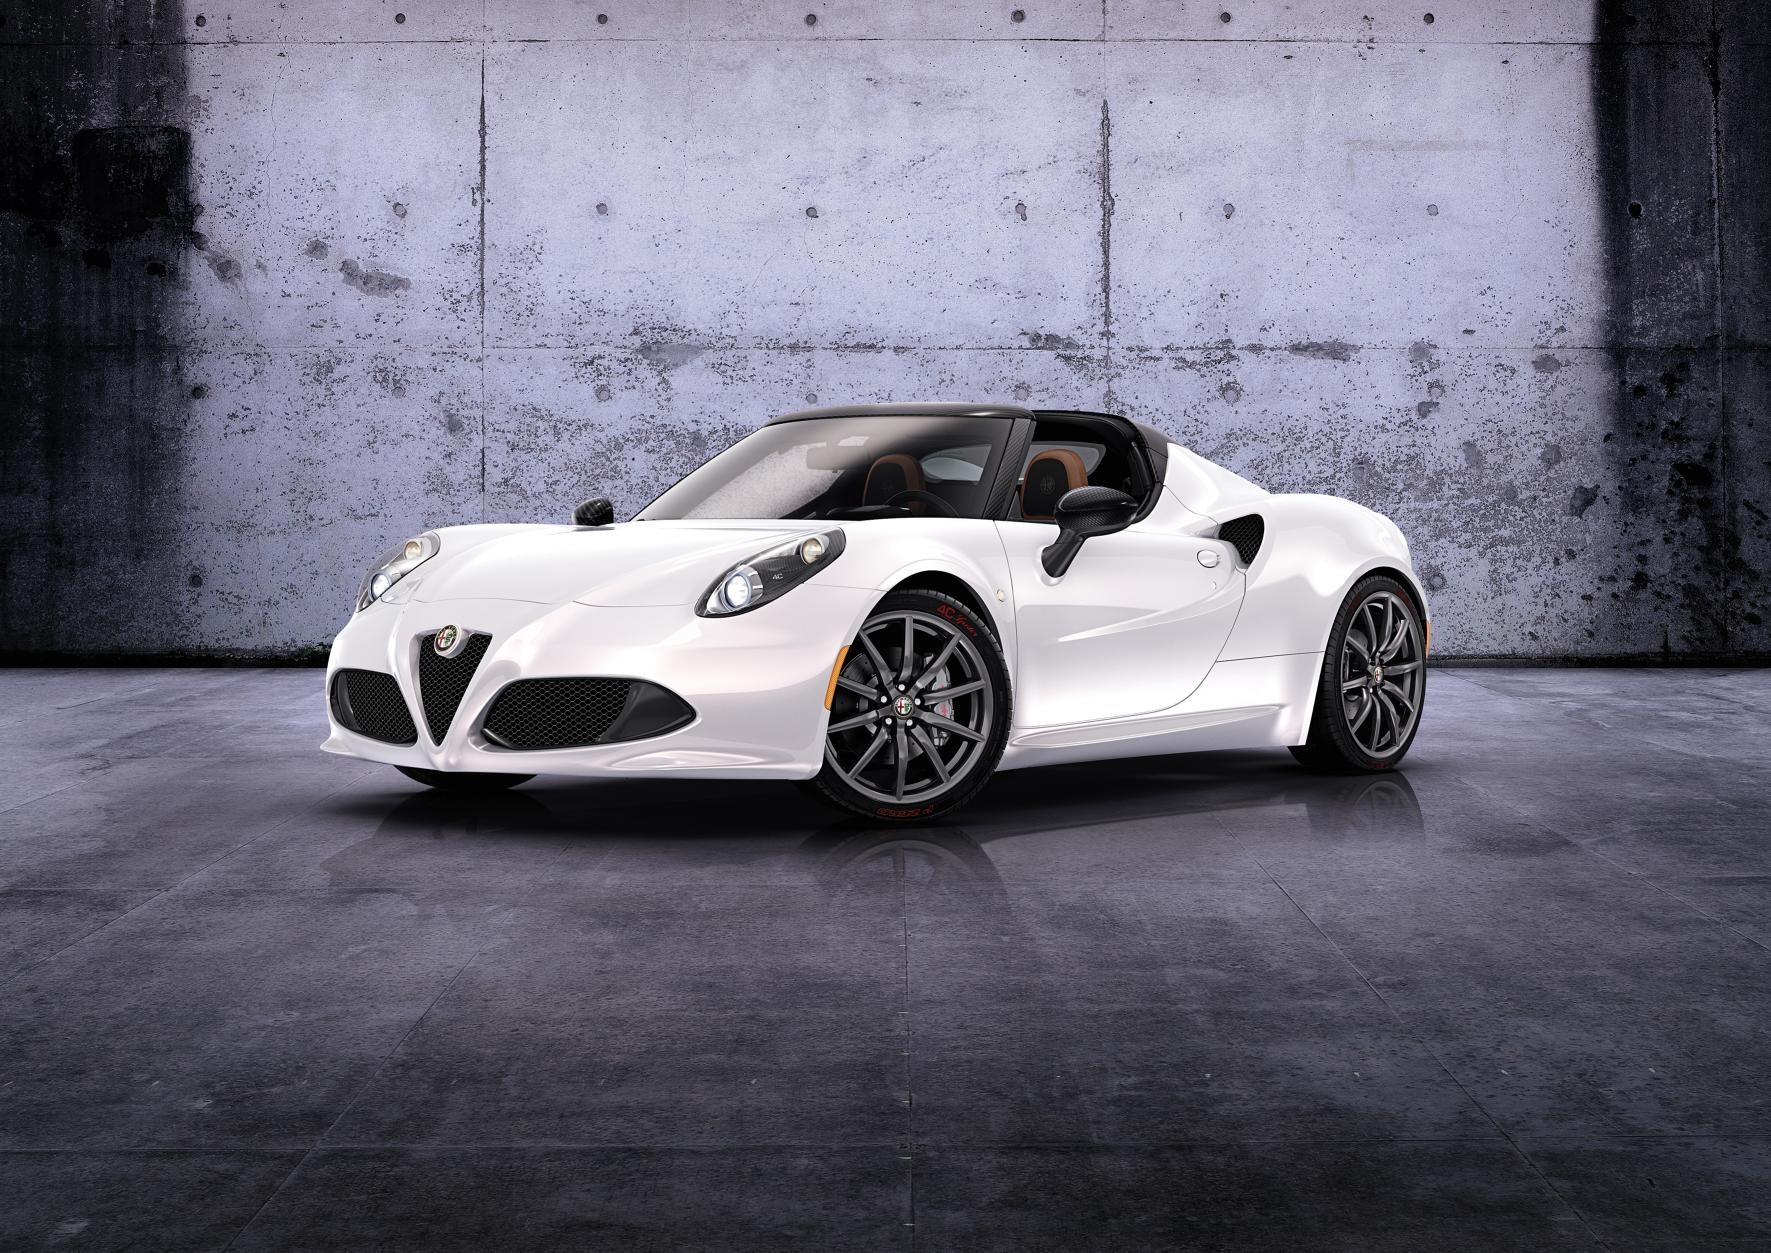 ALFA ROMEO 4C SPIDER UK ORDER BOOKS OPEN